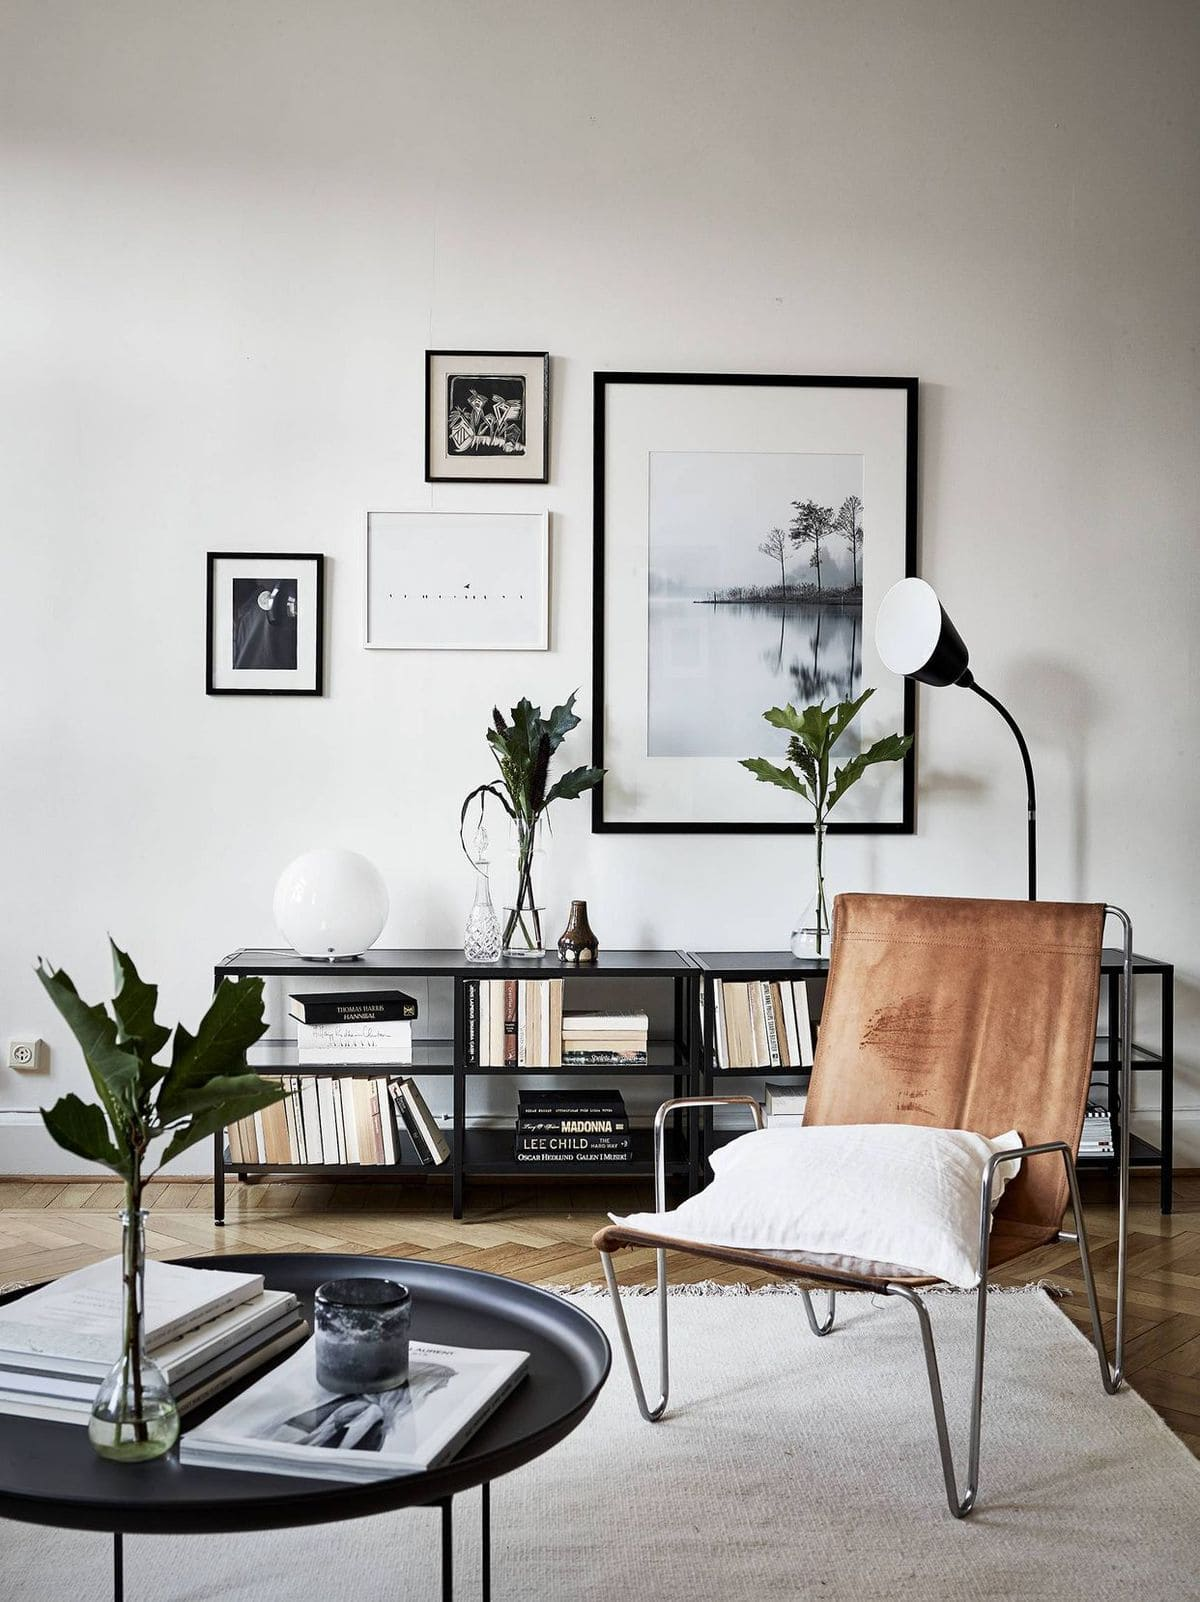 https://www.homelovr.com/wp-content/uploads/2018/06/Neutral-and-monochrome-living-room-wall-gallery.jpeg